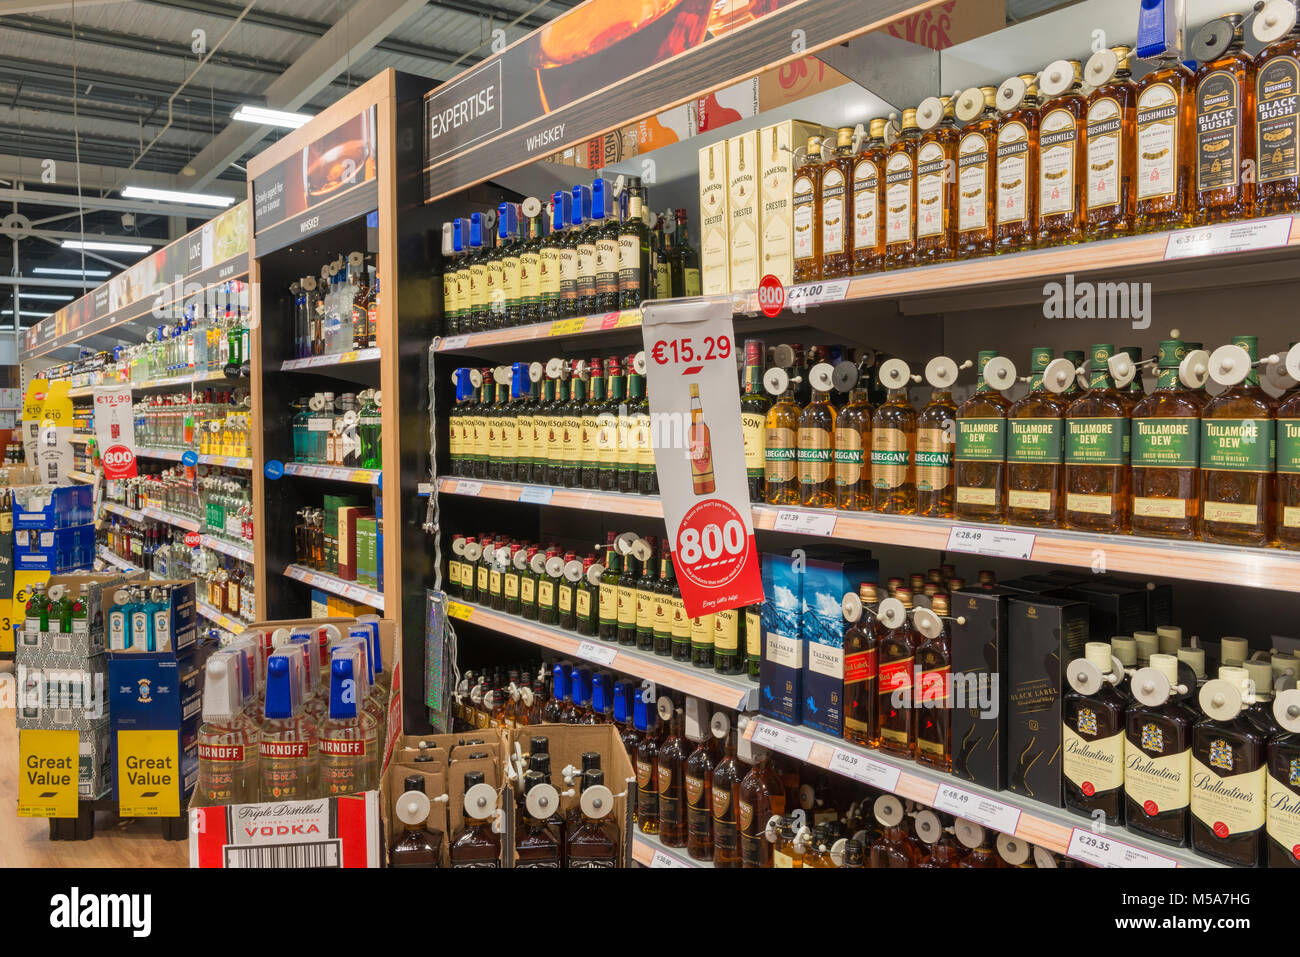 Whisky and other spirits alcohol for sale in a supermarket, Ireland - Stock Image